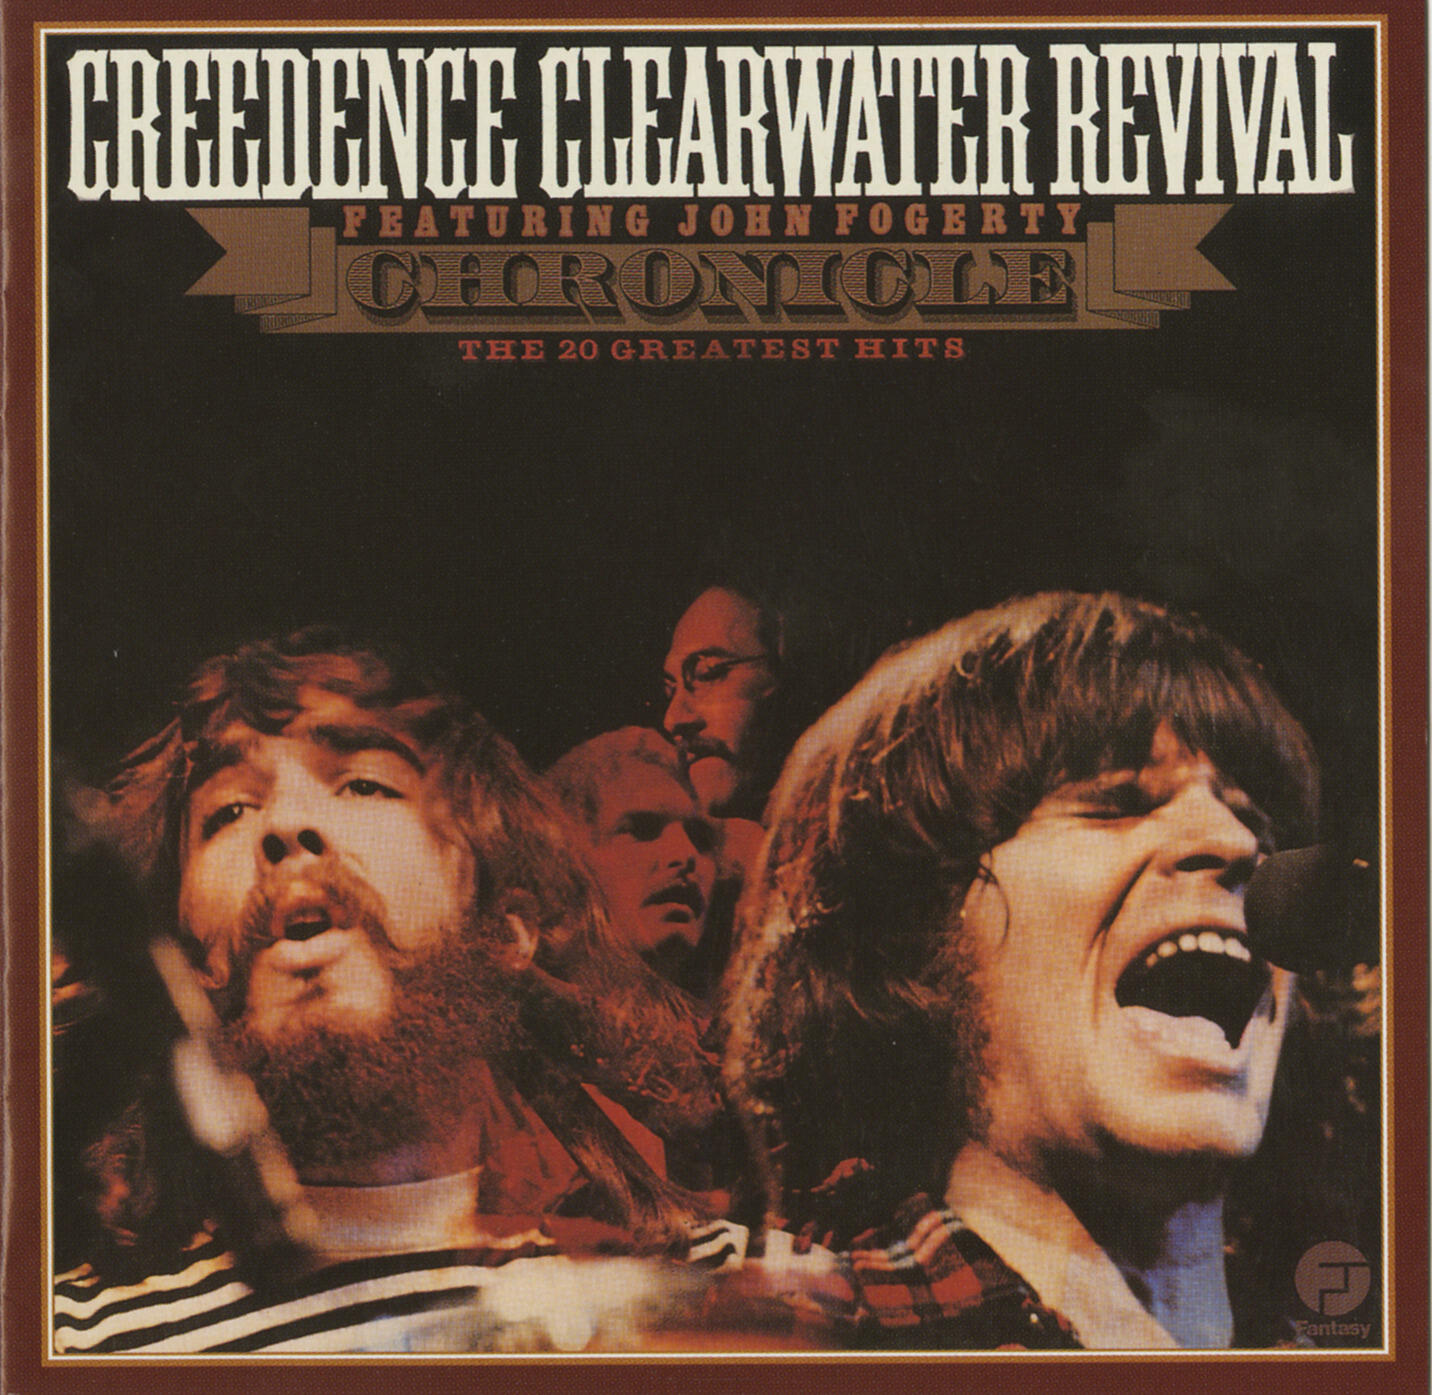 Creedence clearwater fortunate